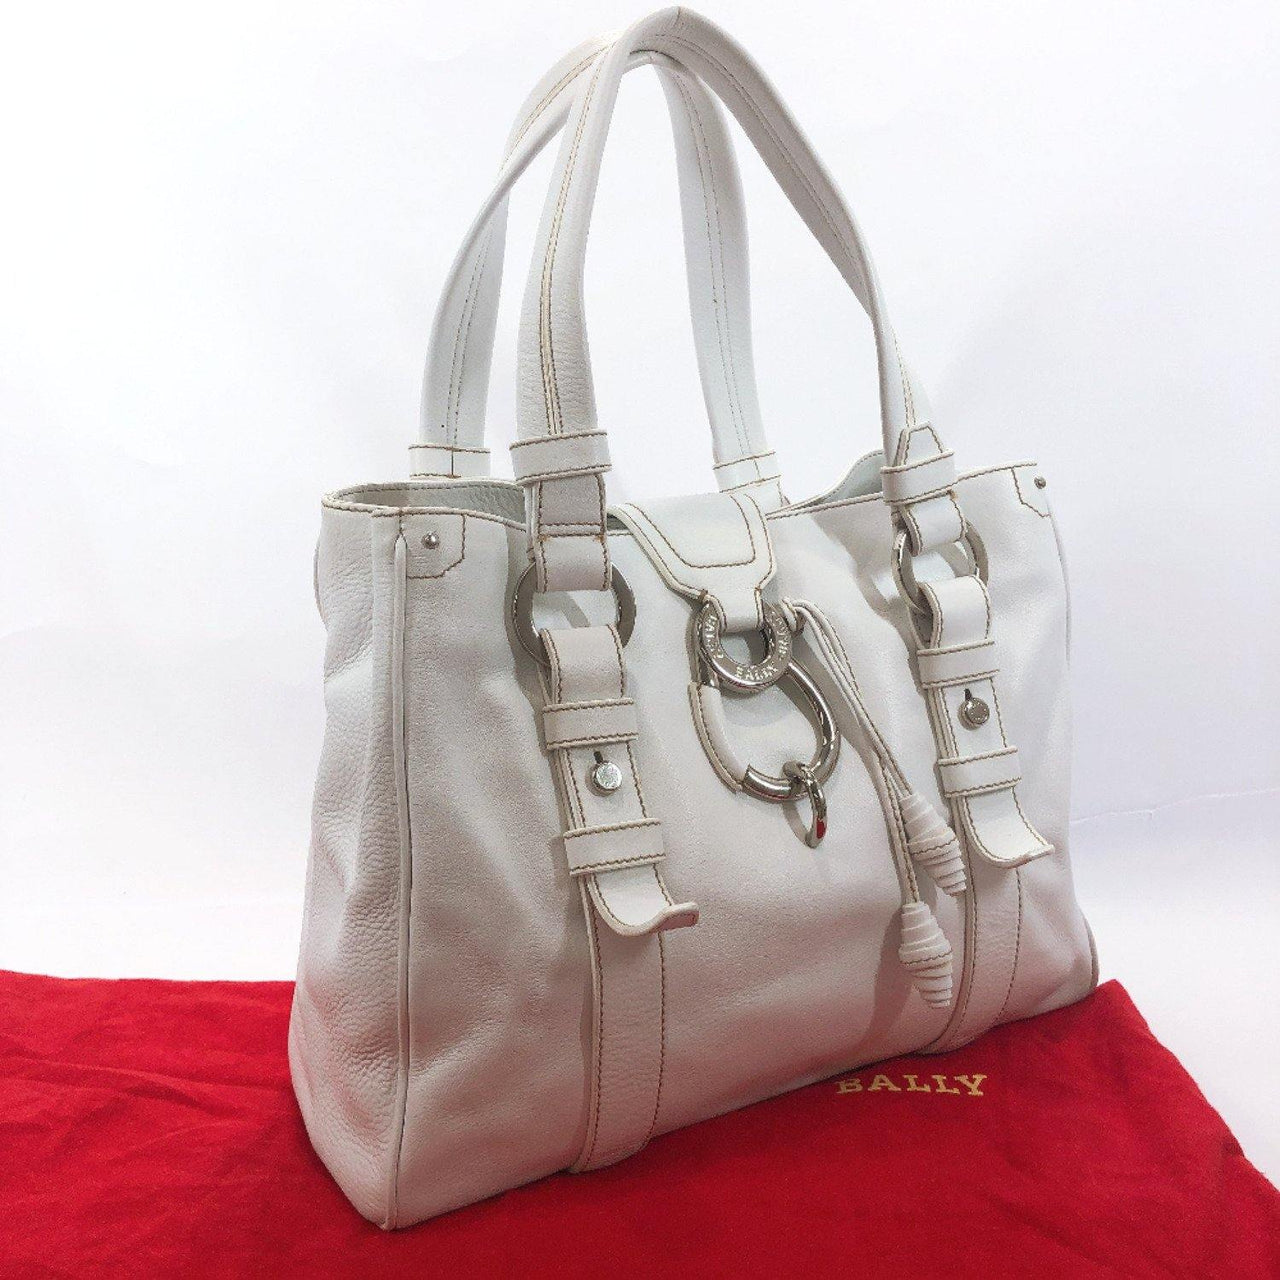 BALLY Handbag GSPJ MIMOSA leather white SilverHardware Women Used - JP-BRANDS.com